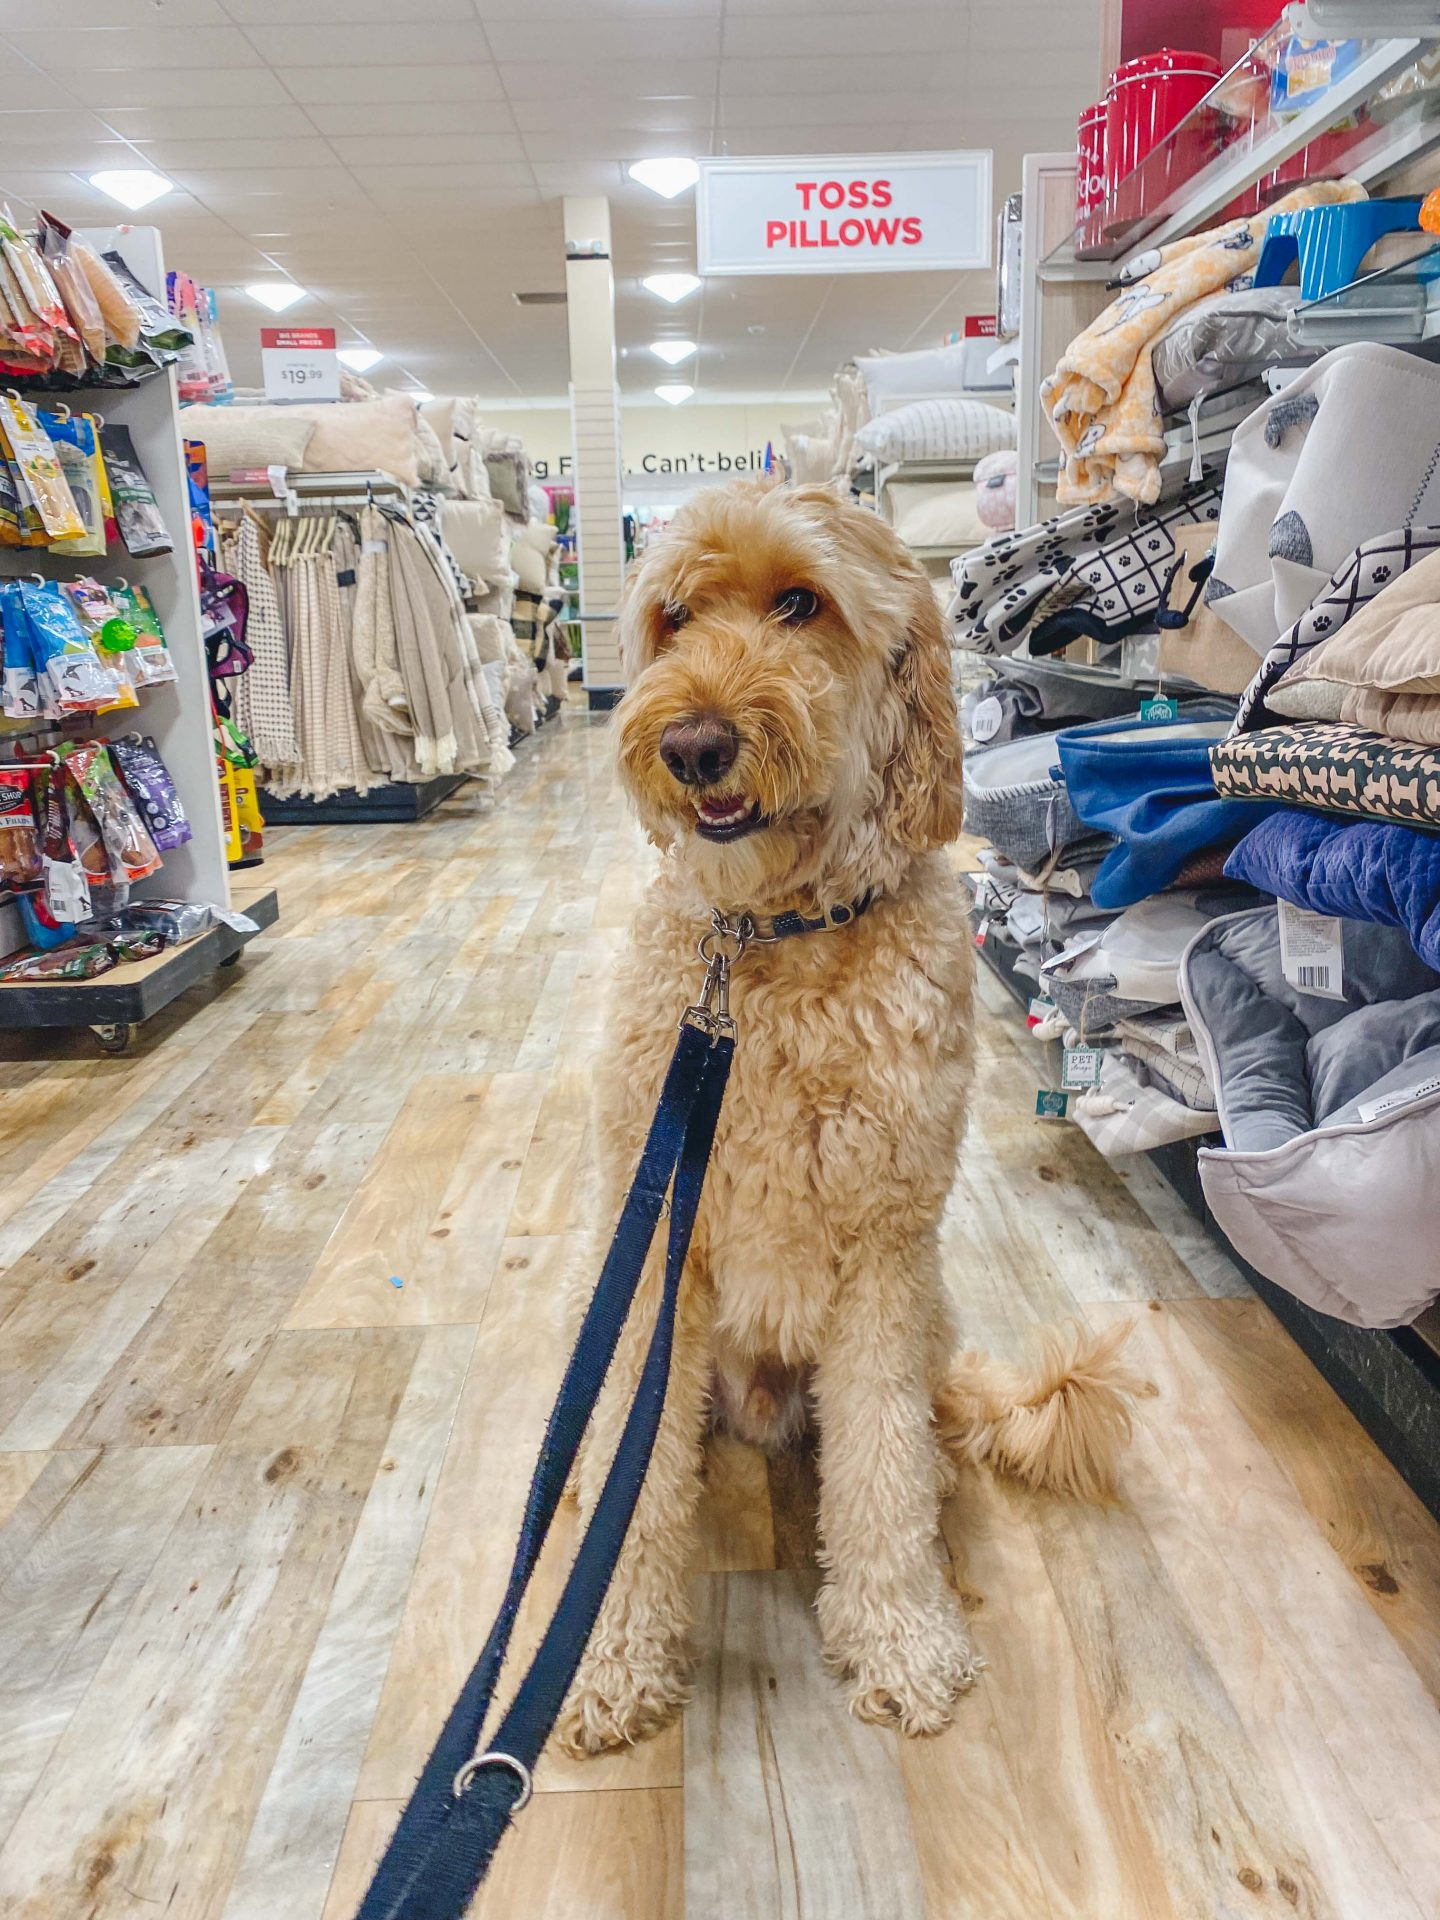 pet friendly places, is home goods pet friendly, bring my dog to home goods, tjmaxx allow pets